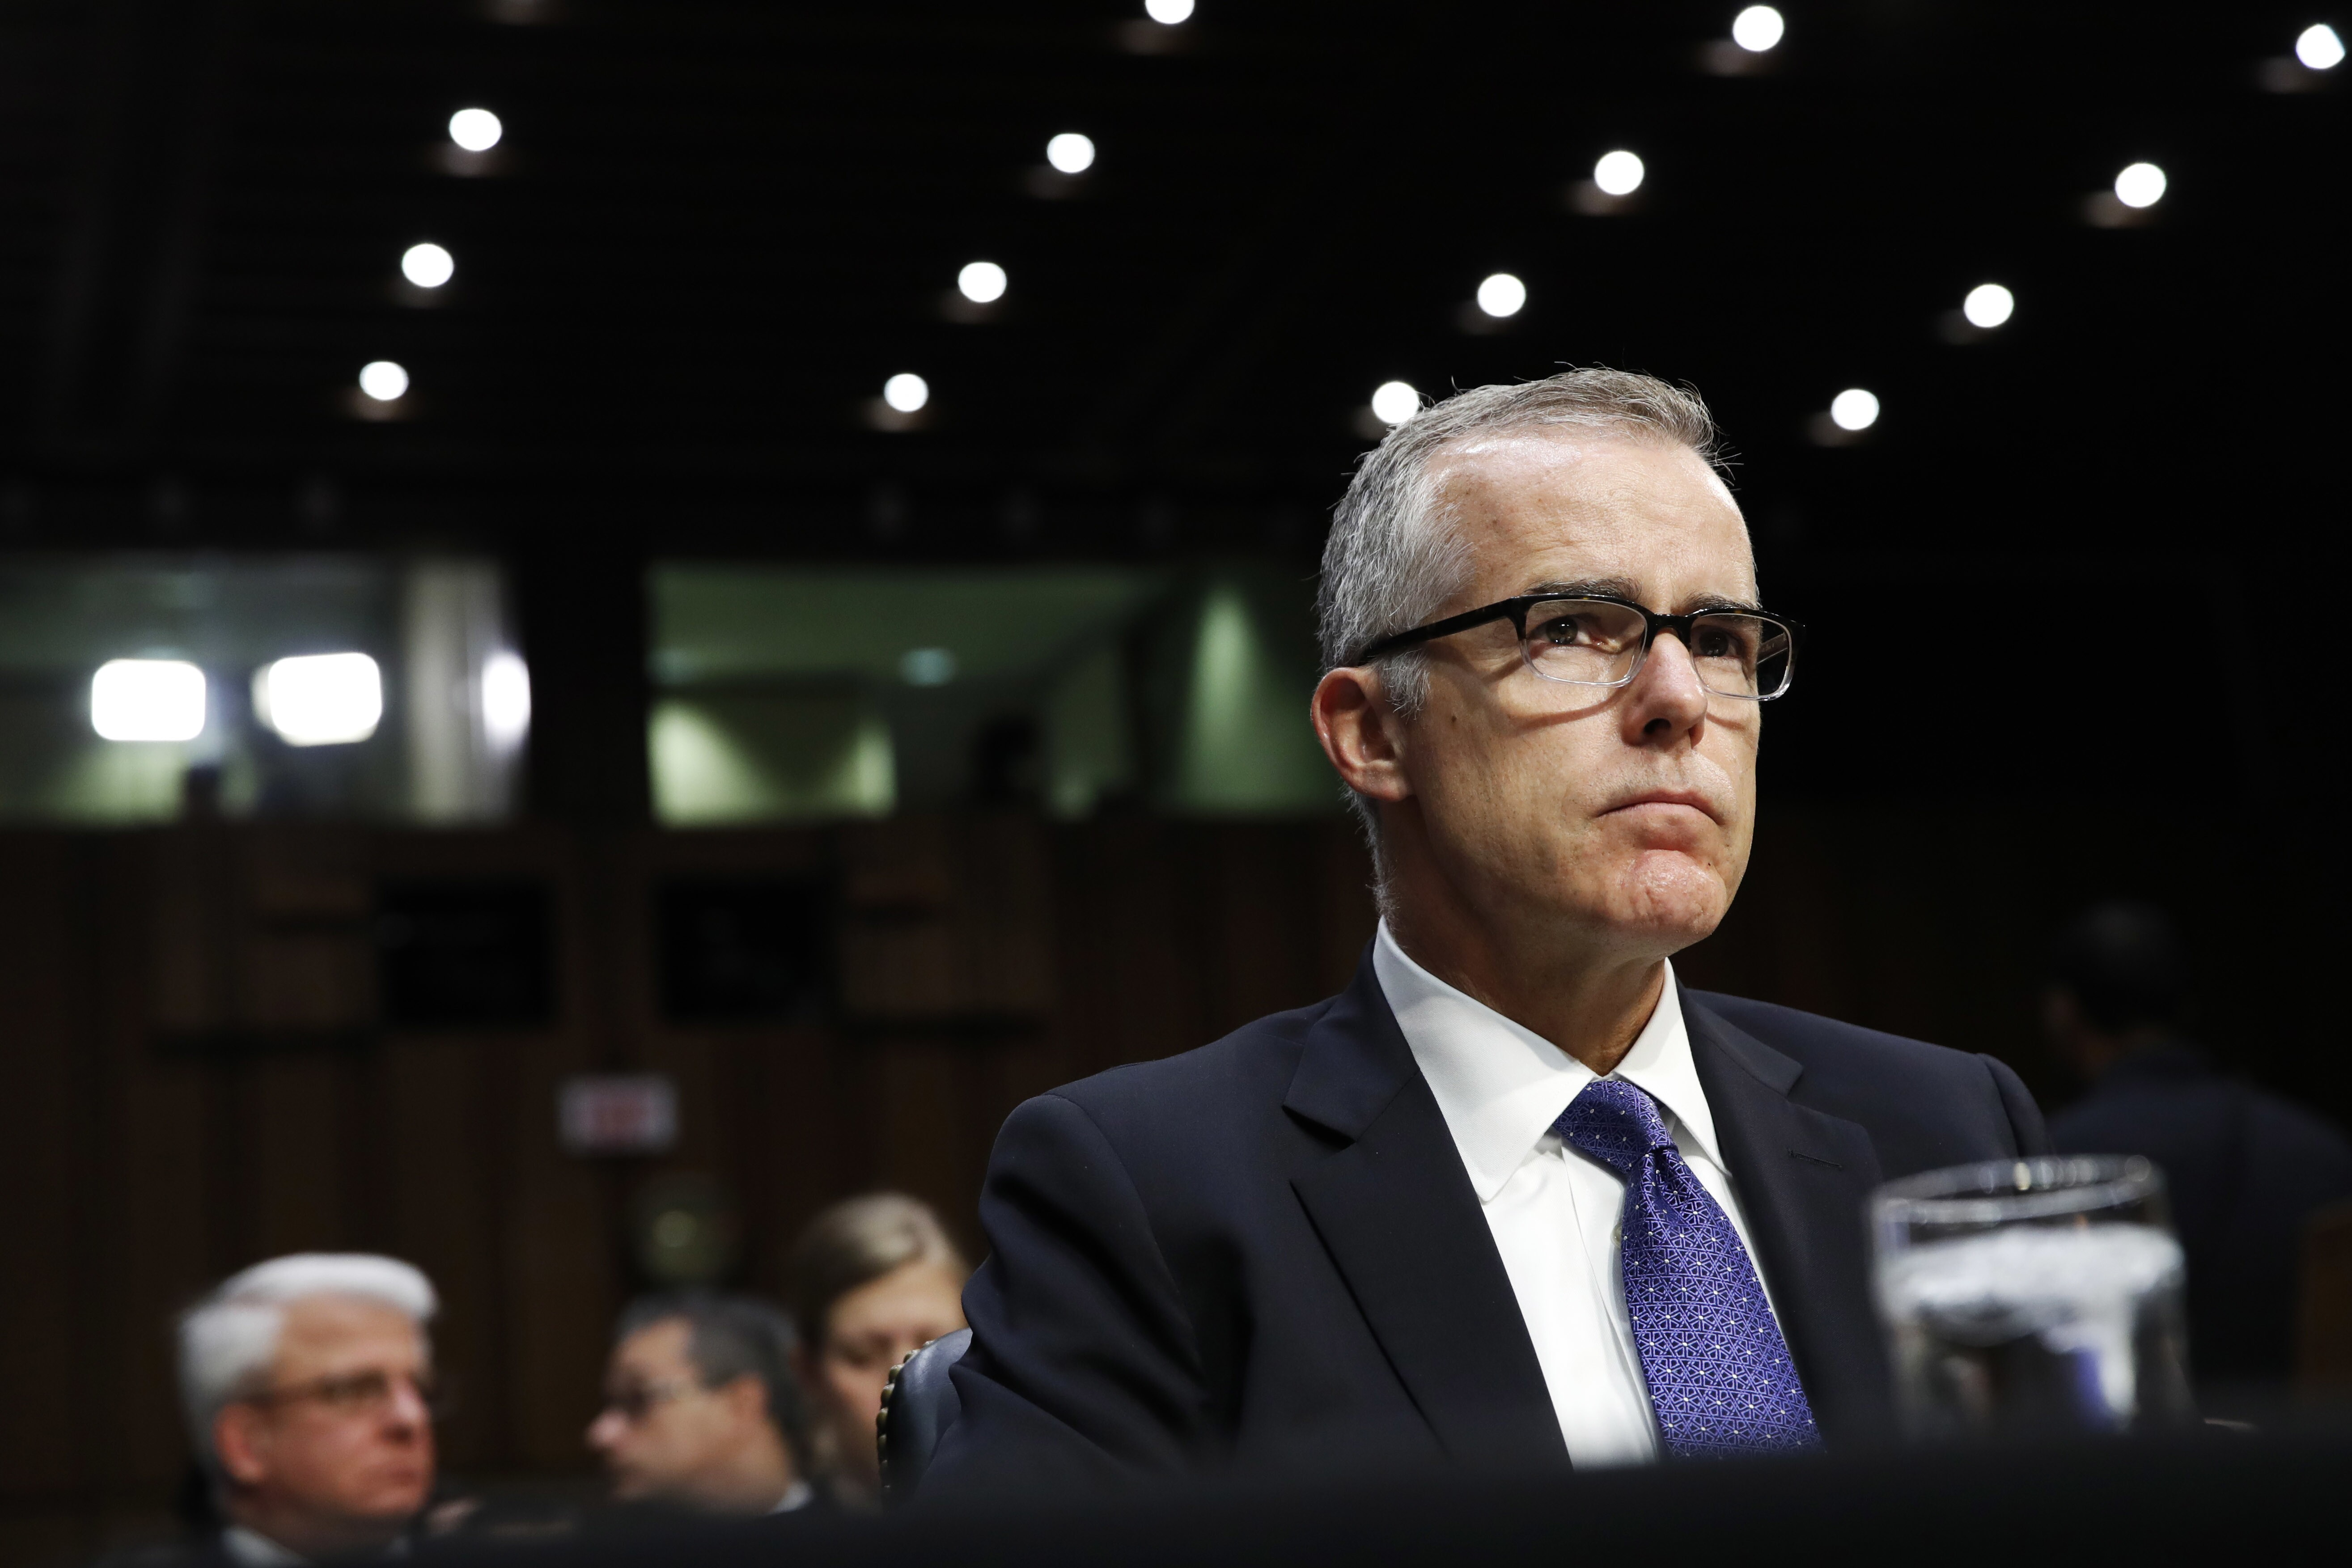 Inspector general: Fired FBI Deputy Director Andrew McCabe 'lacked